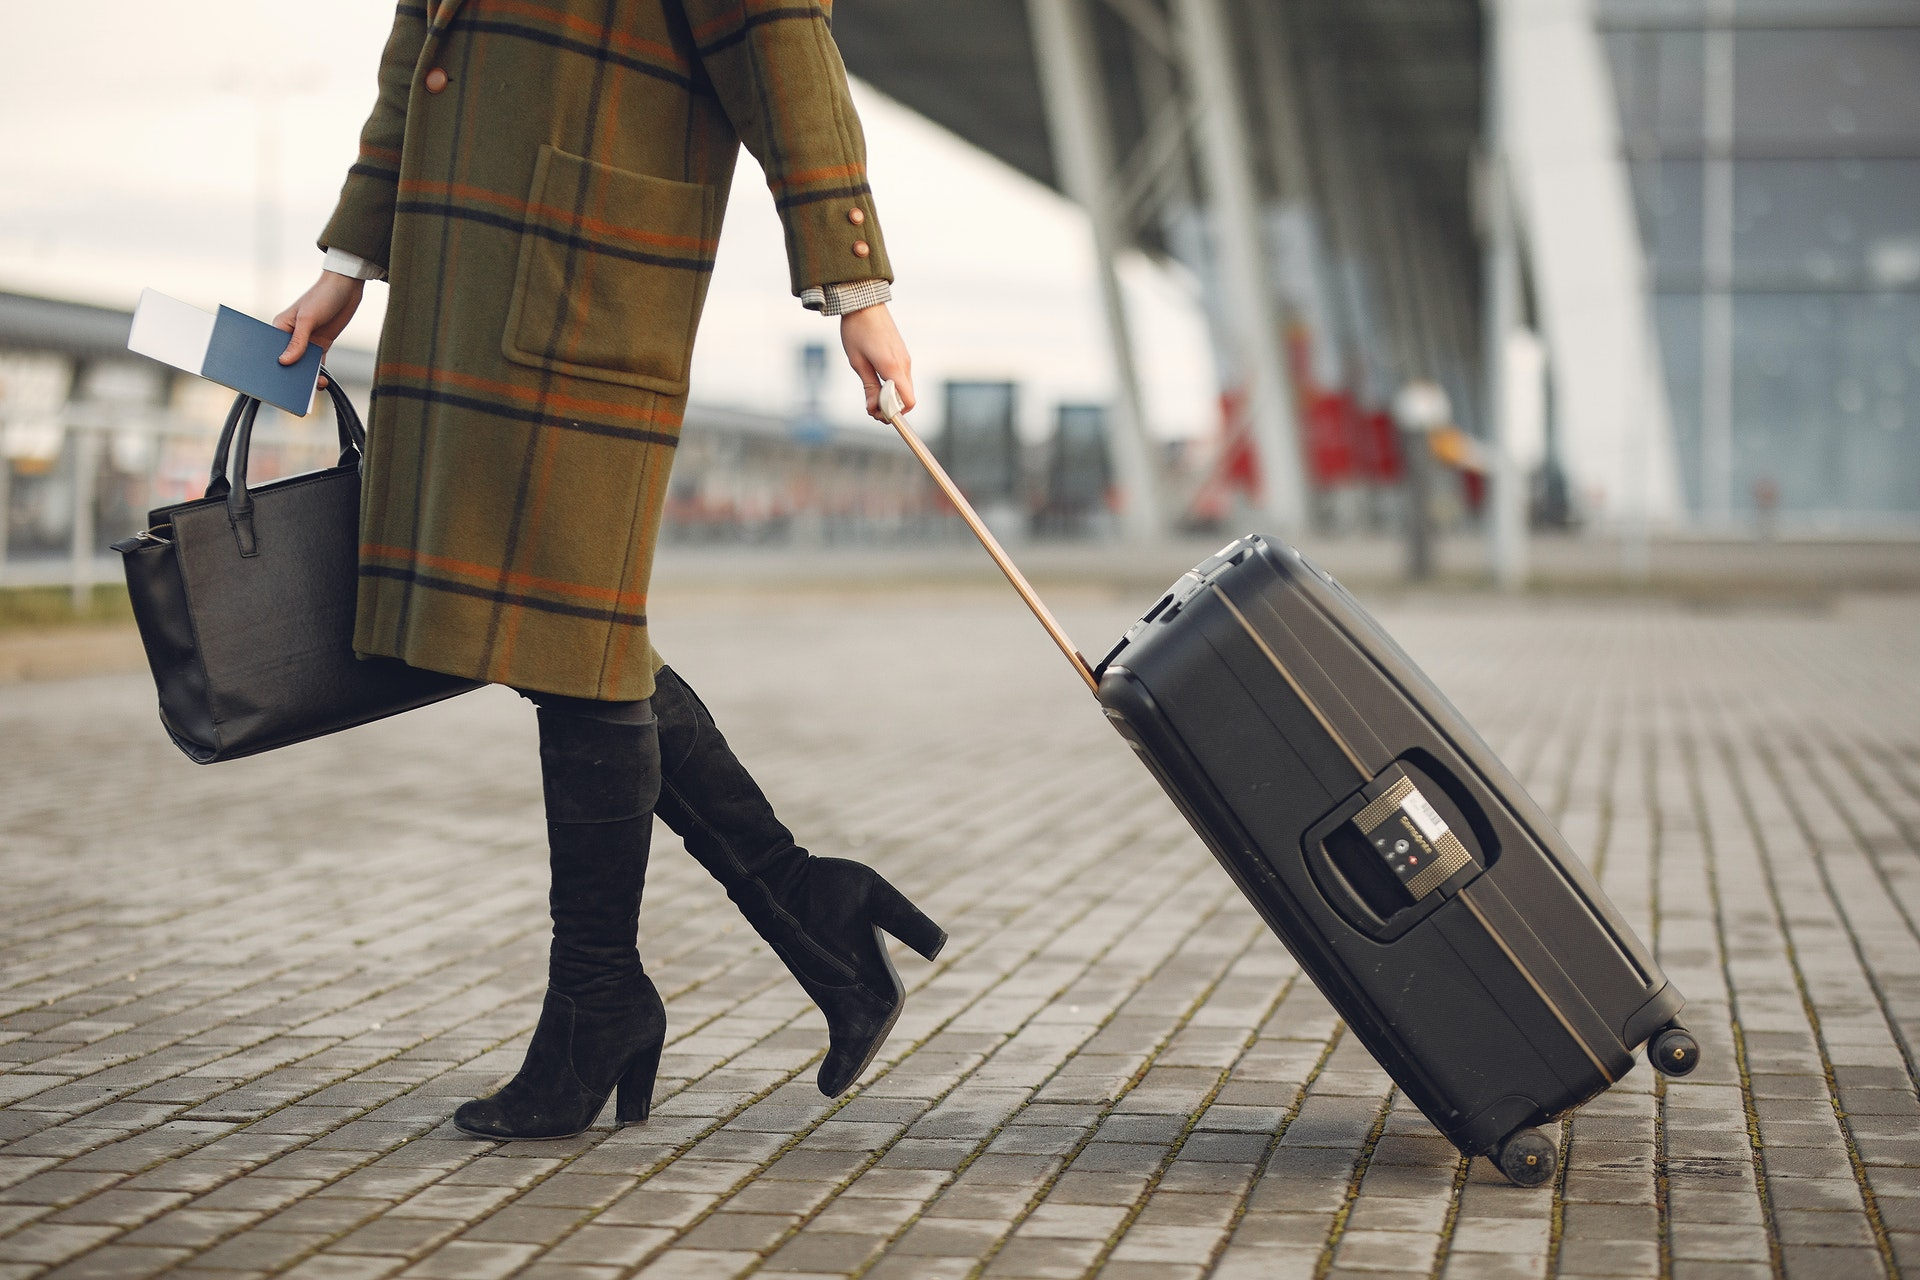 woman in boots with luggage bag - retirement travel tips